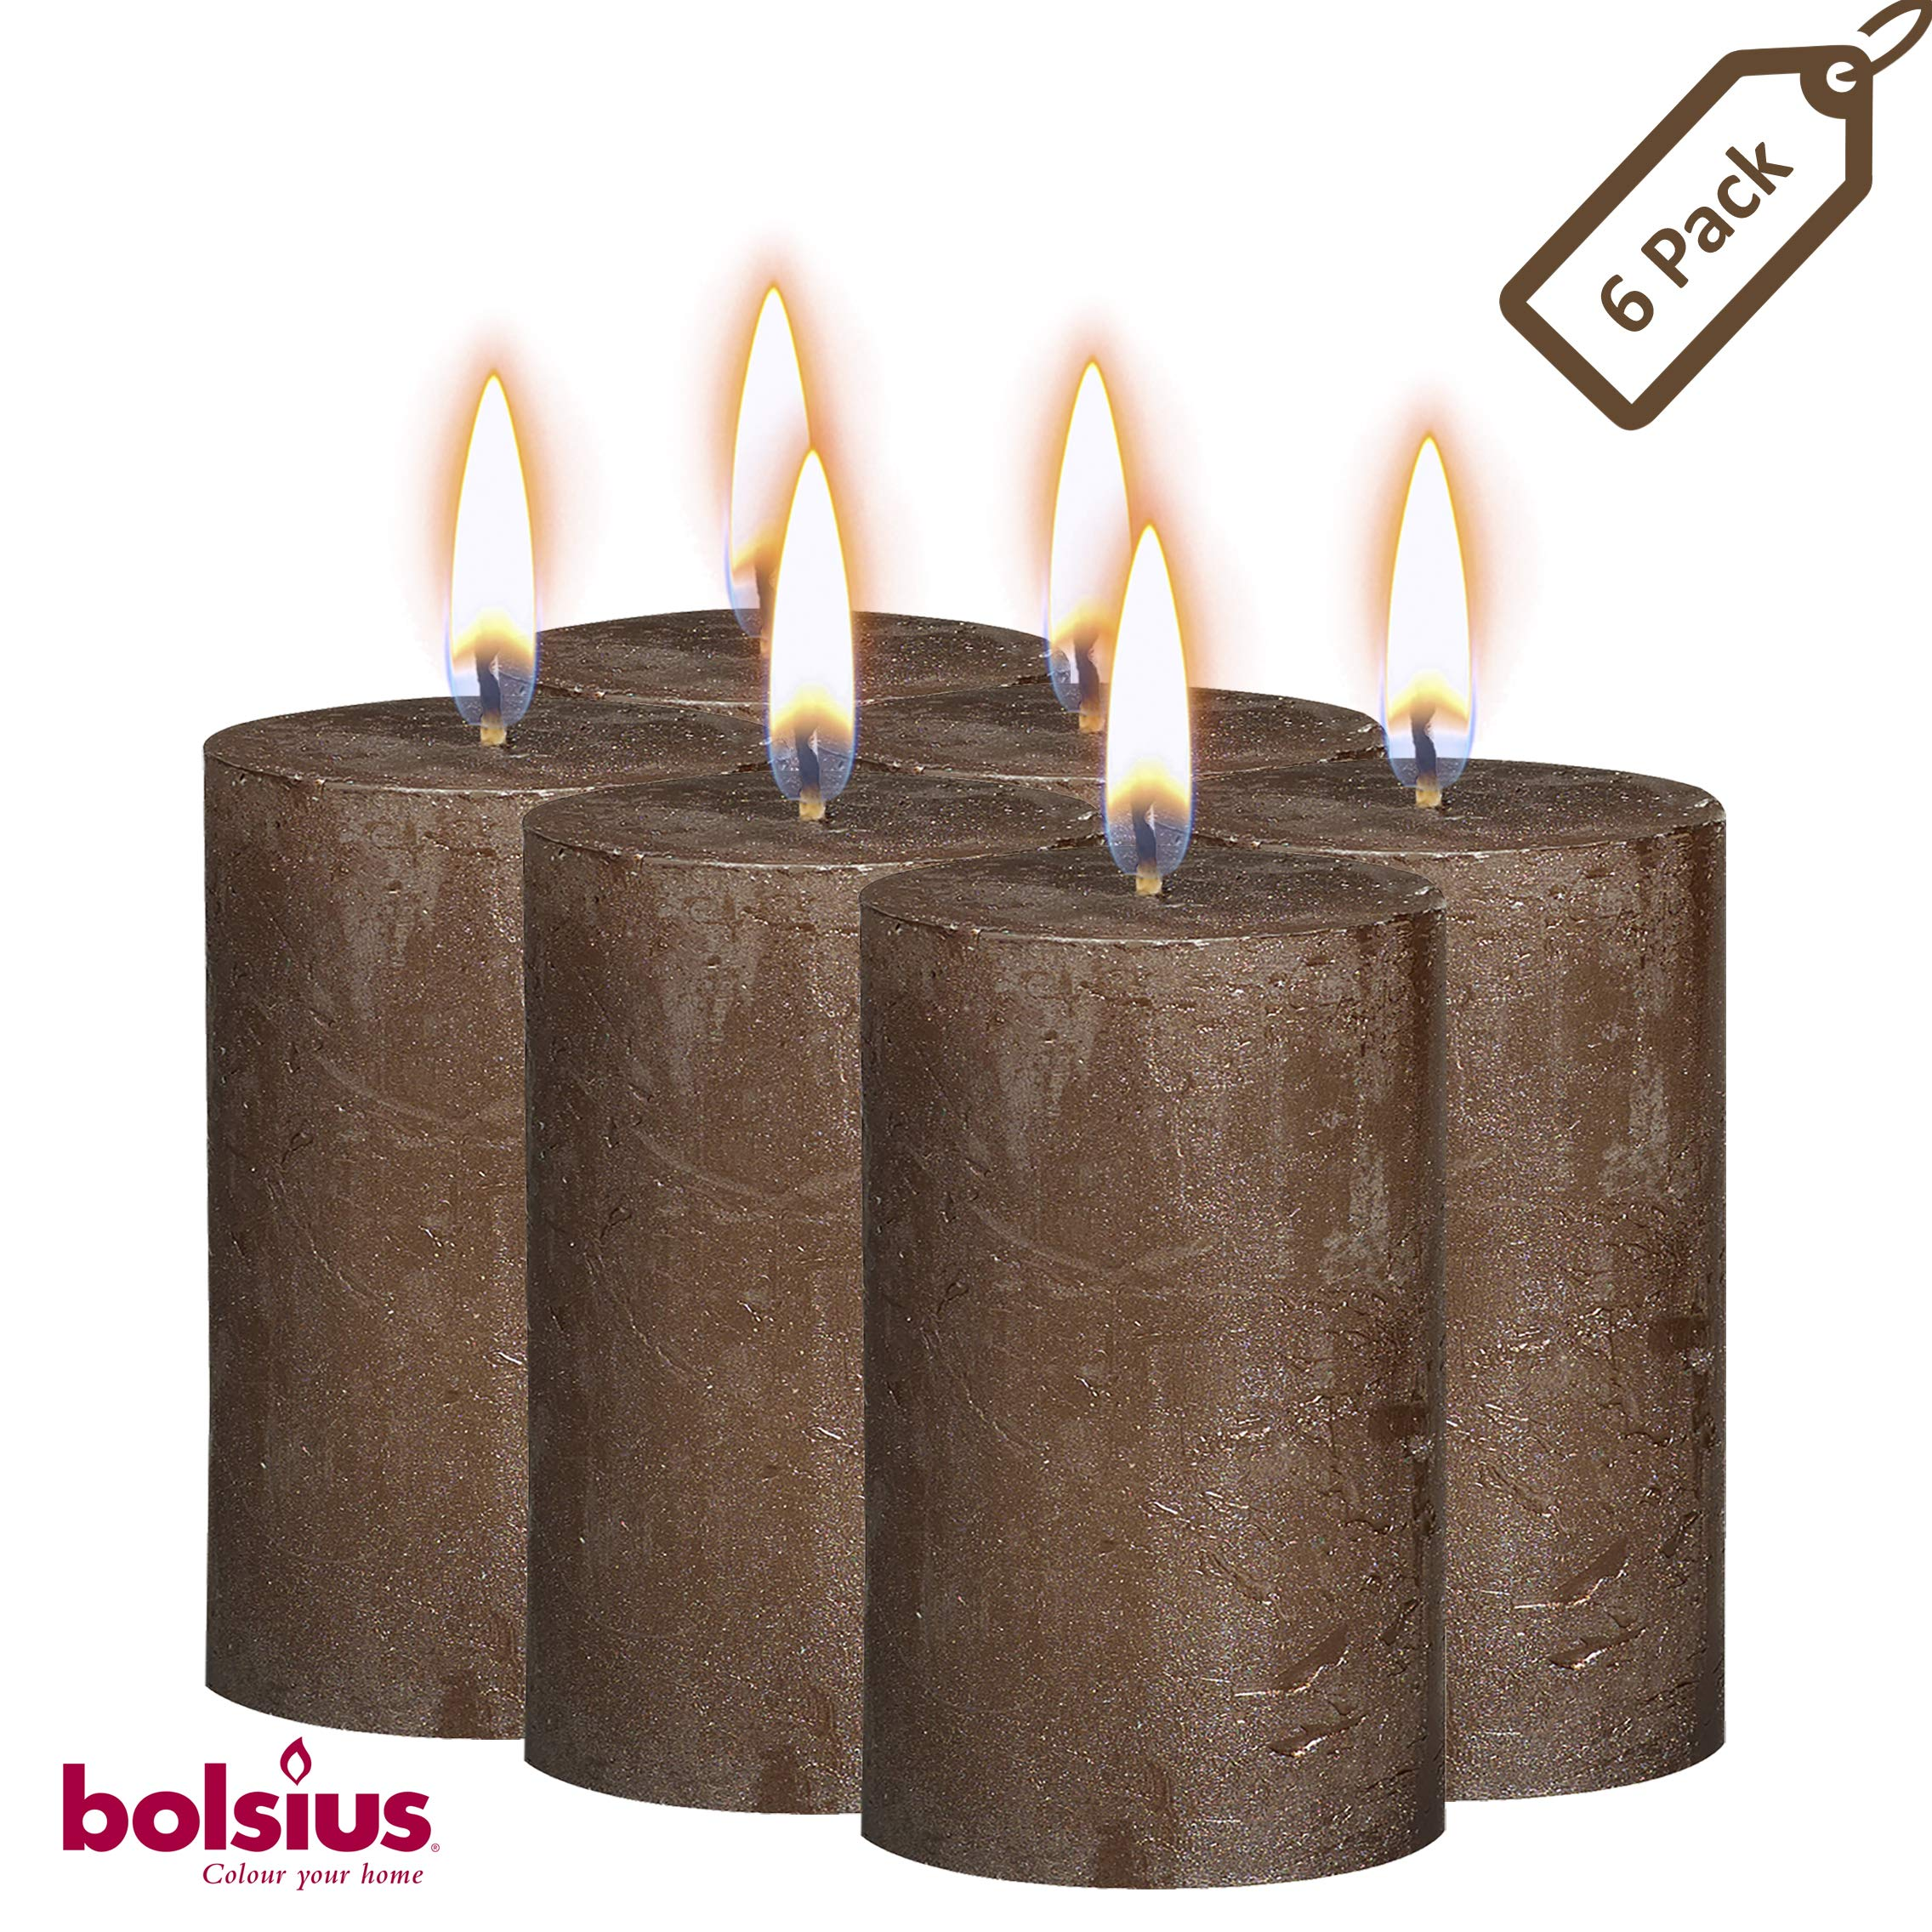 BOLSIUS Rustic Full Metallic Brown Candles - Set of 6 Unscented Pillar Candles - Brown Candles with a Full Metallic Coat - Slow Burning - Perfect Décor Candle - 130/68m 5 X 2.75 Inches